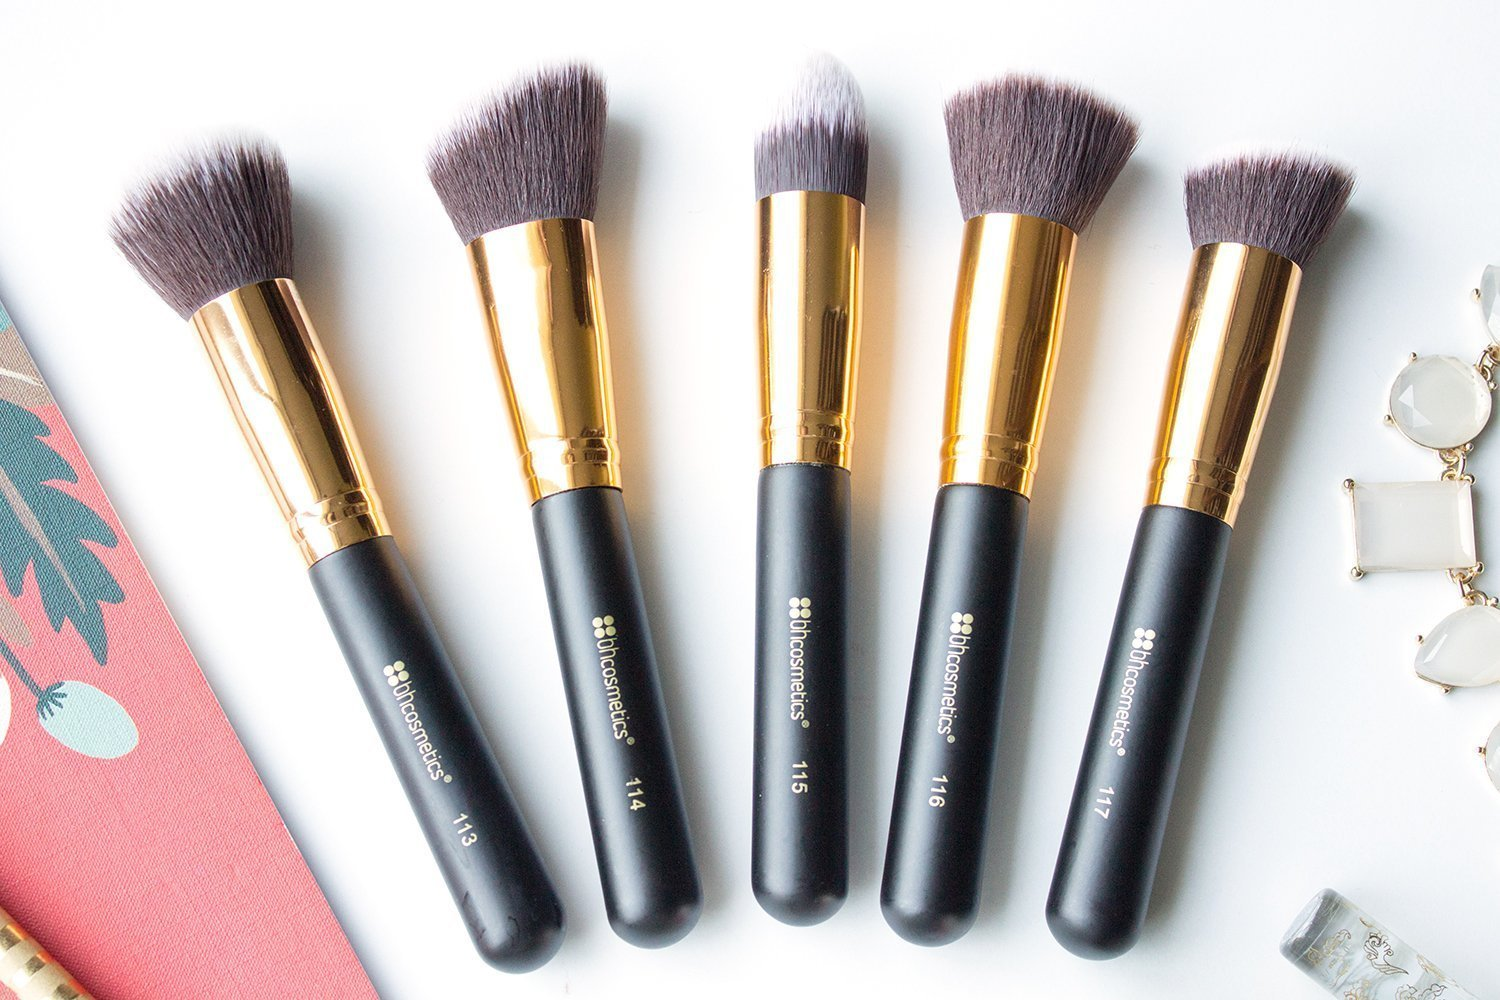 069887d8484bd I ll take you through each of the brushes in this set and tell you a little  bit about how I ve been using them!